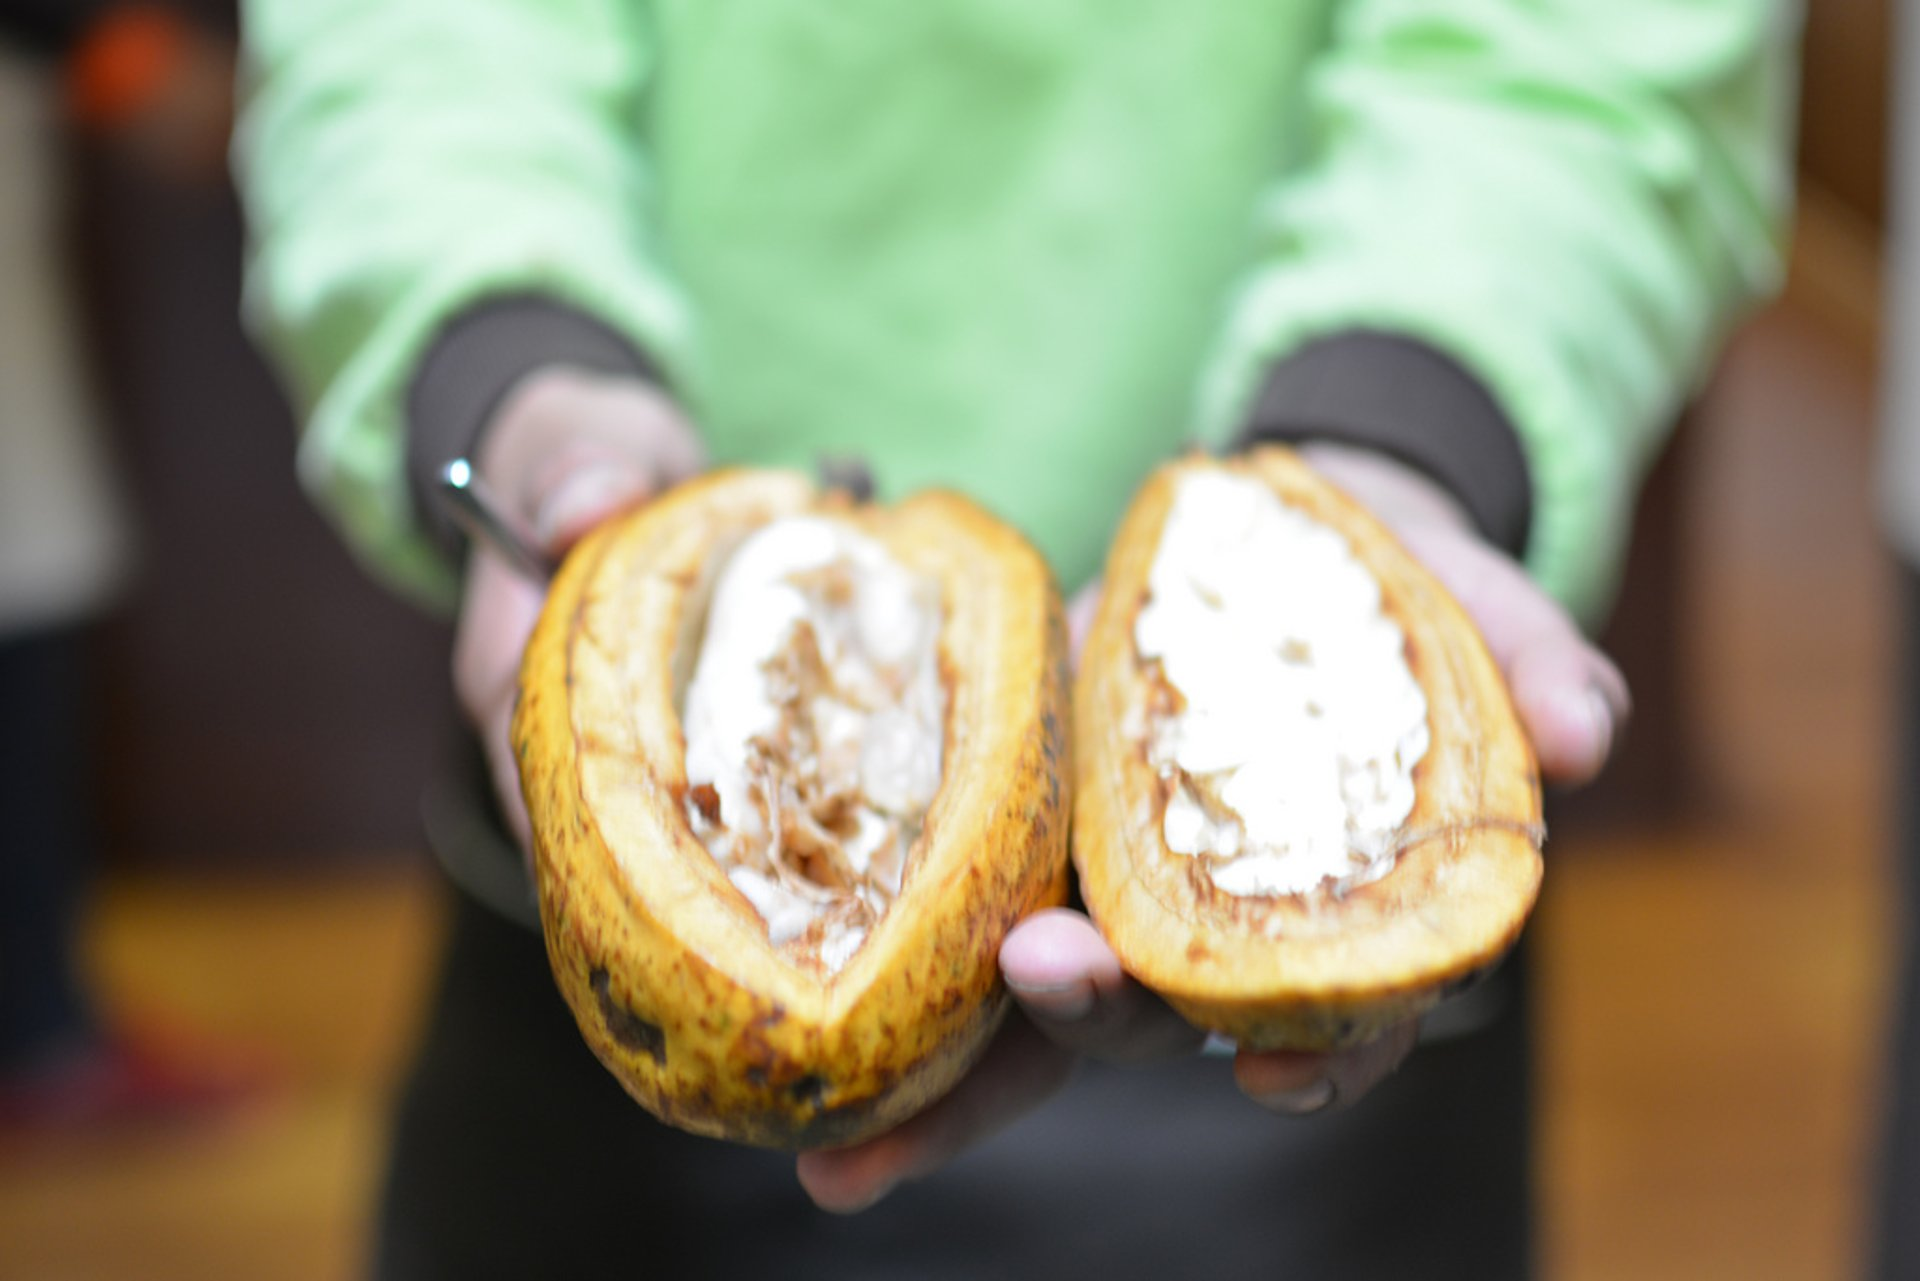 Cacao Harvest Season in Machu Picchu and Cusco 2020 - Best Time